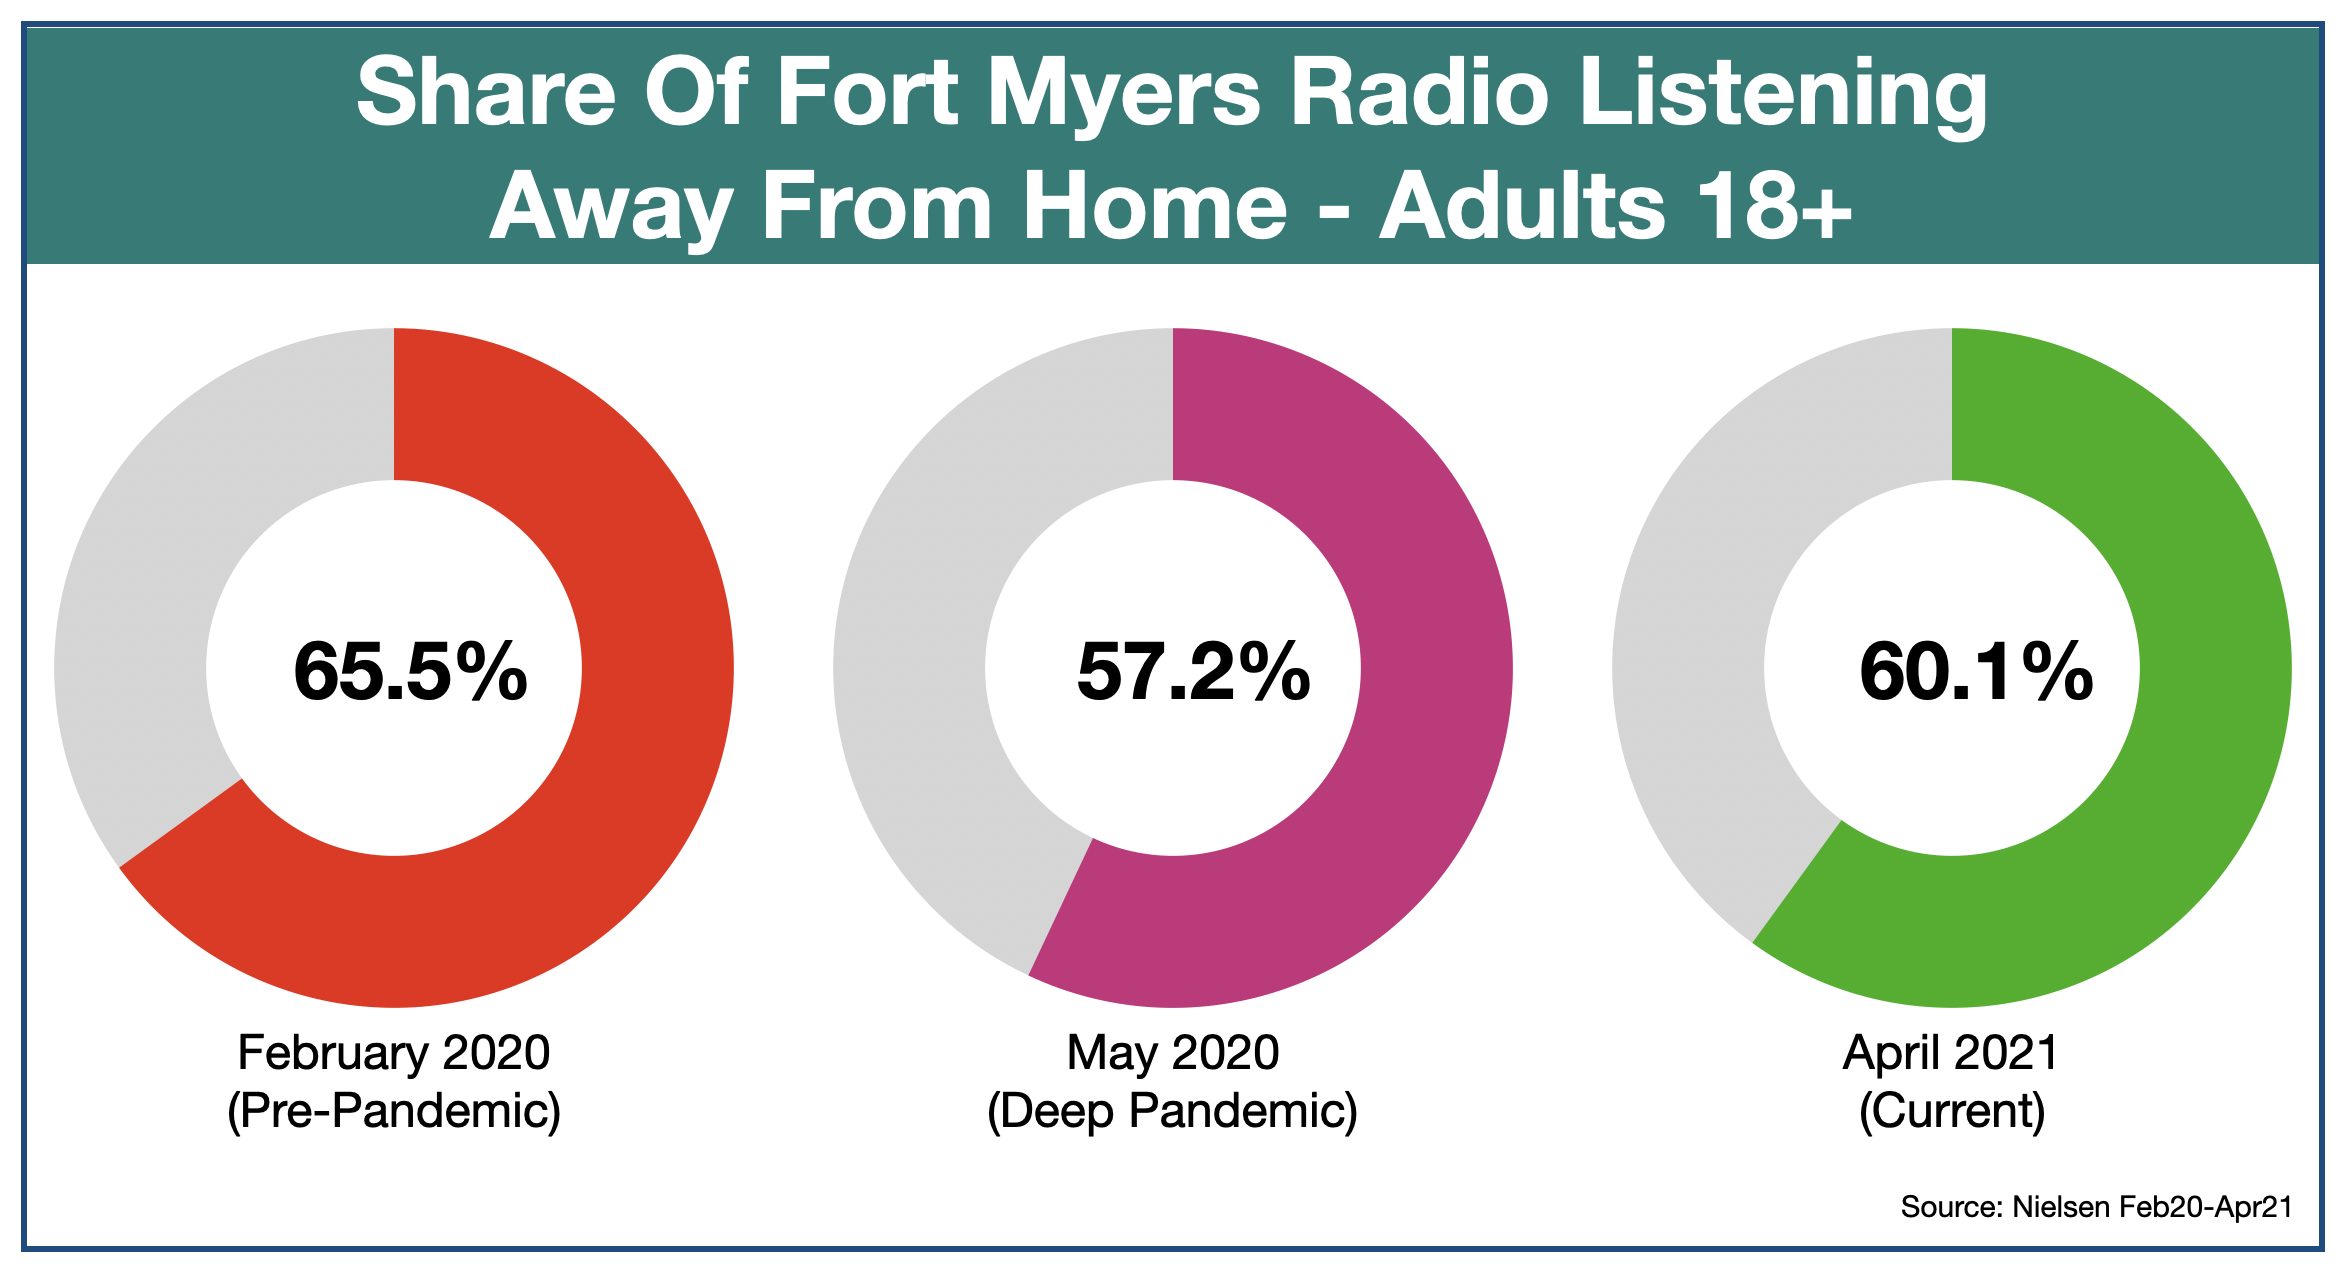 Advertise On Fort Myers Radio Listening Locations April 2021